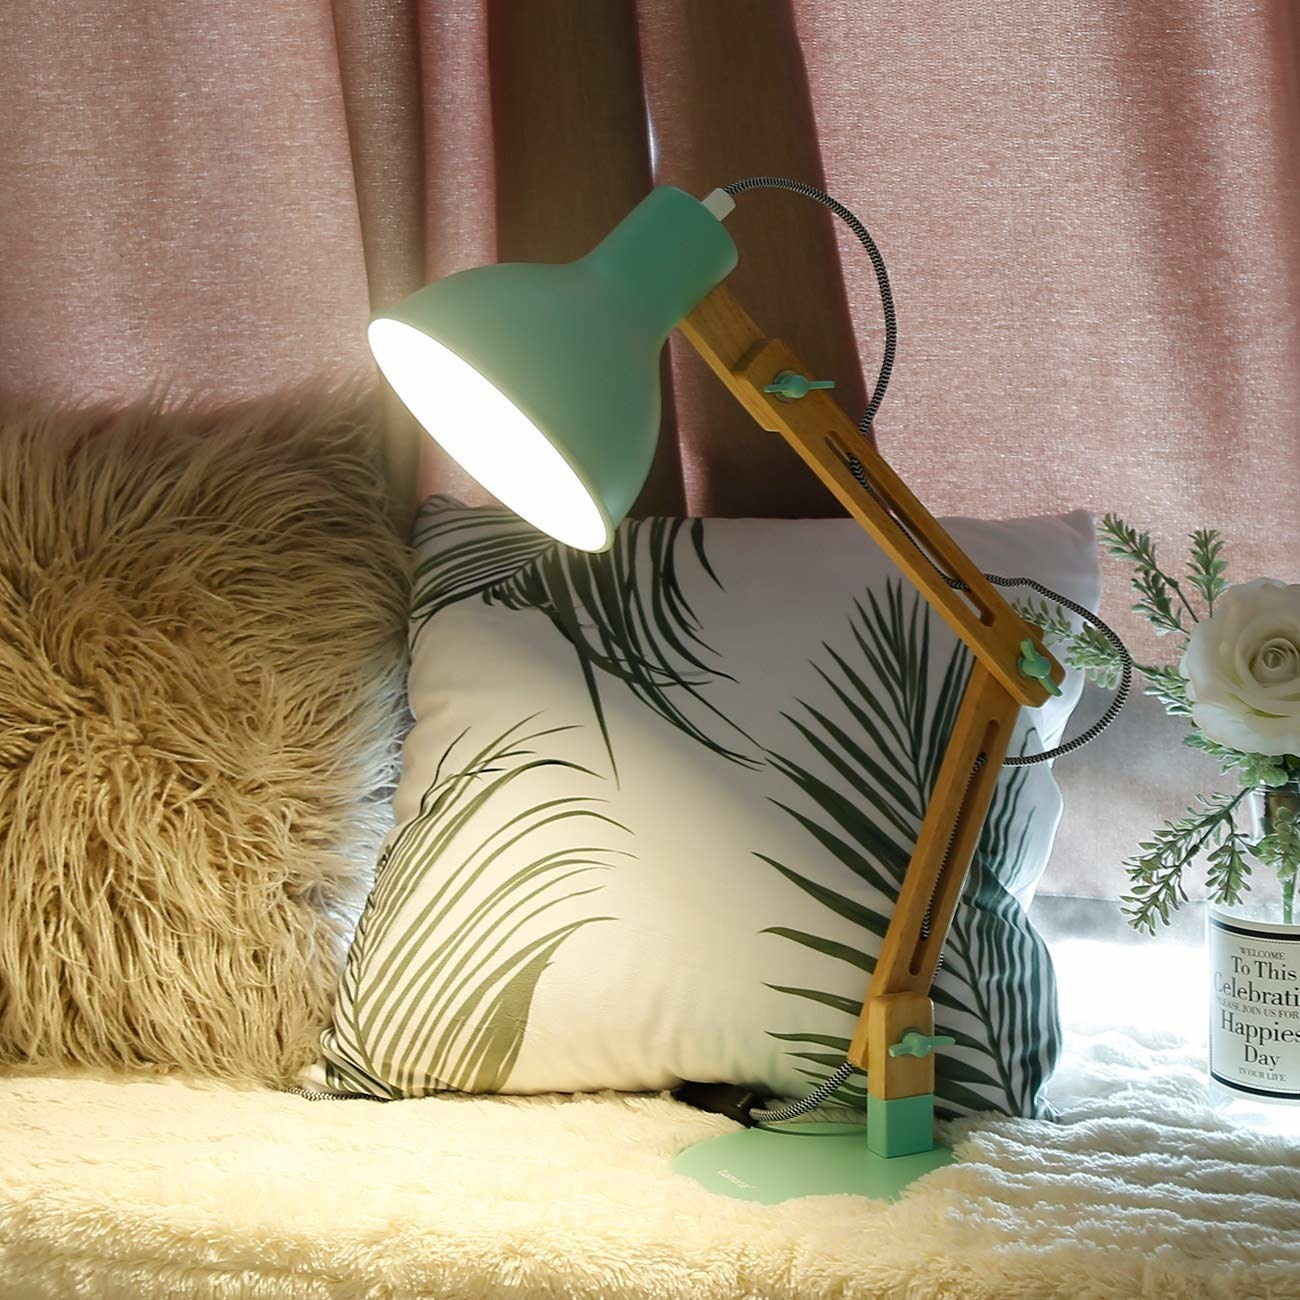 the mint green lamp in front of two pillows